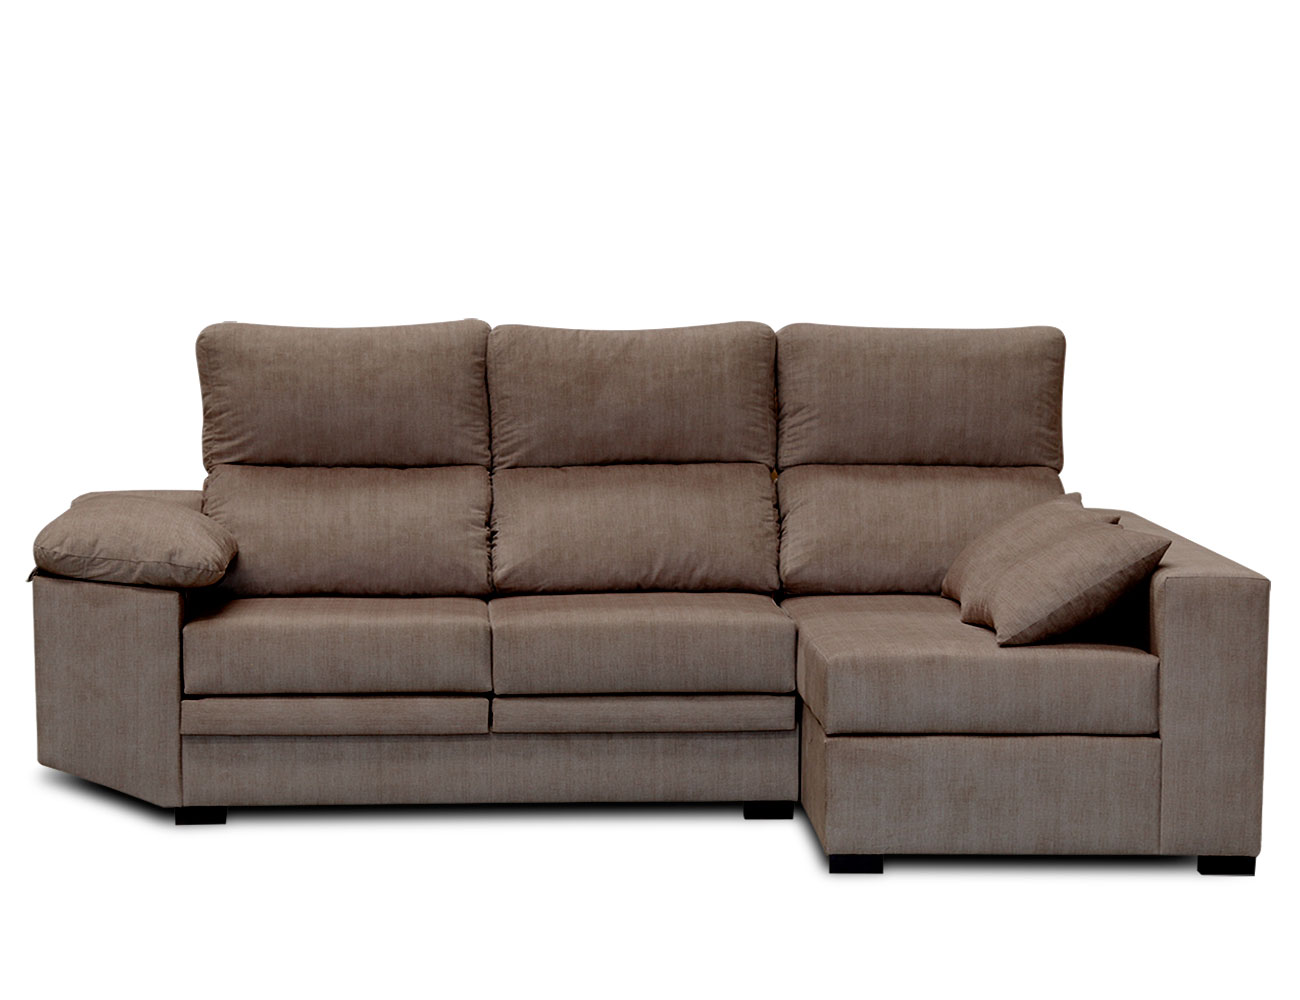 Sofa chaiselongue moderno cojines moka 1